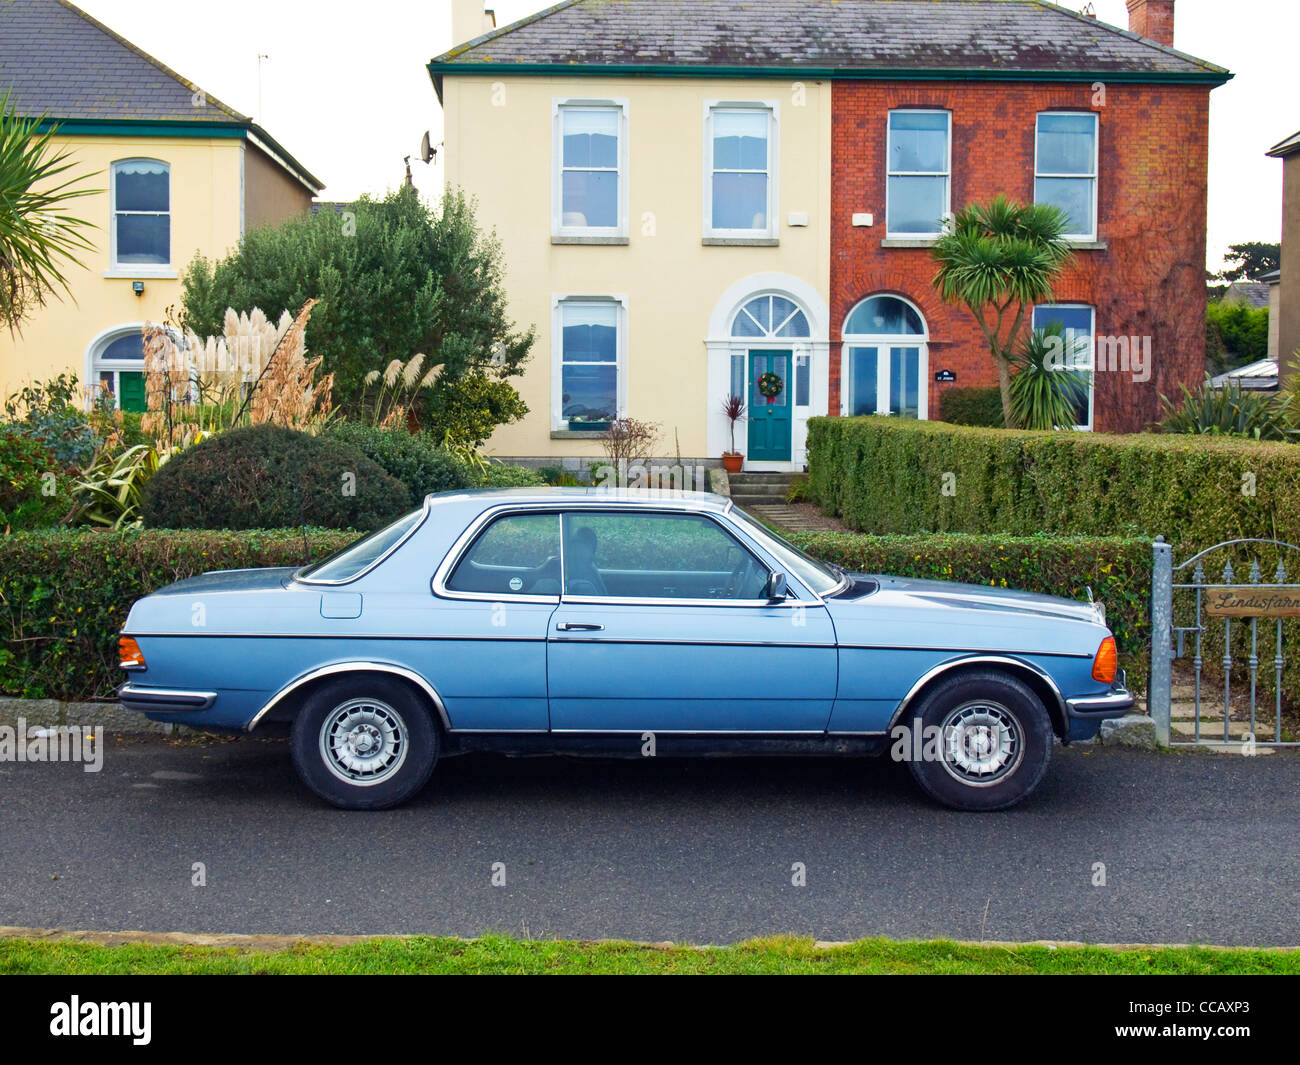 Old Mercedes Benz Stock Photos Images Alamy 230ce Fuel Filter A 1985 Registered 230 Ce Saloon Car In Excellent Exterior Condition Image